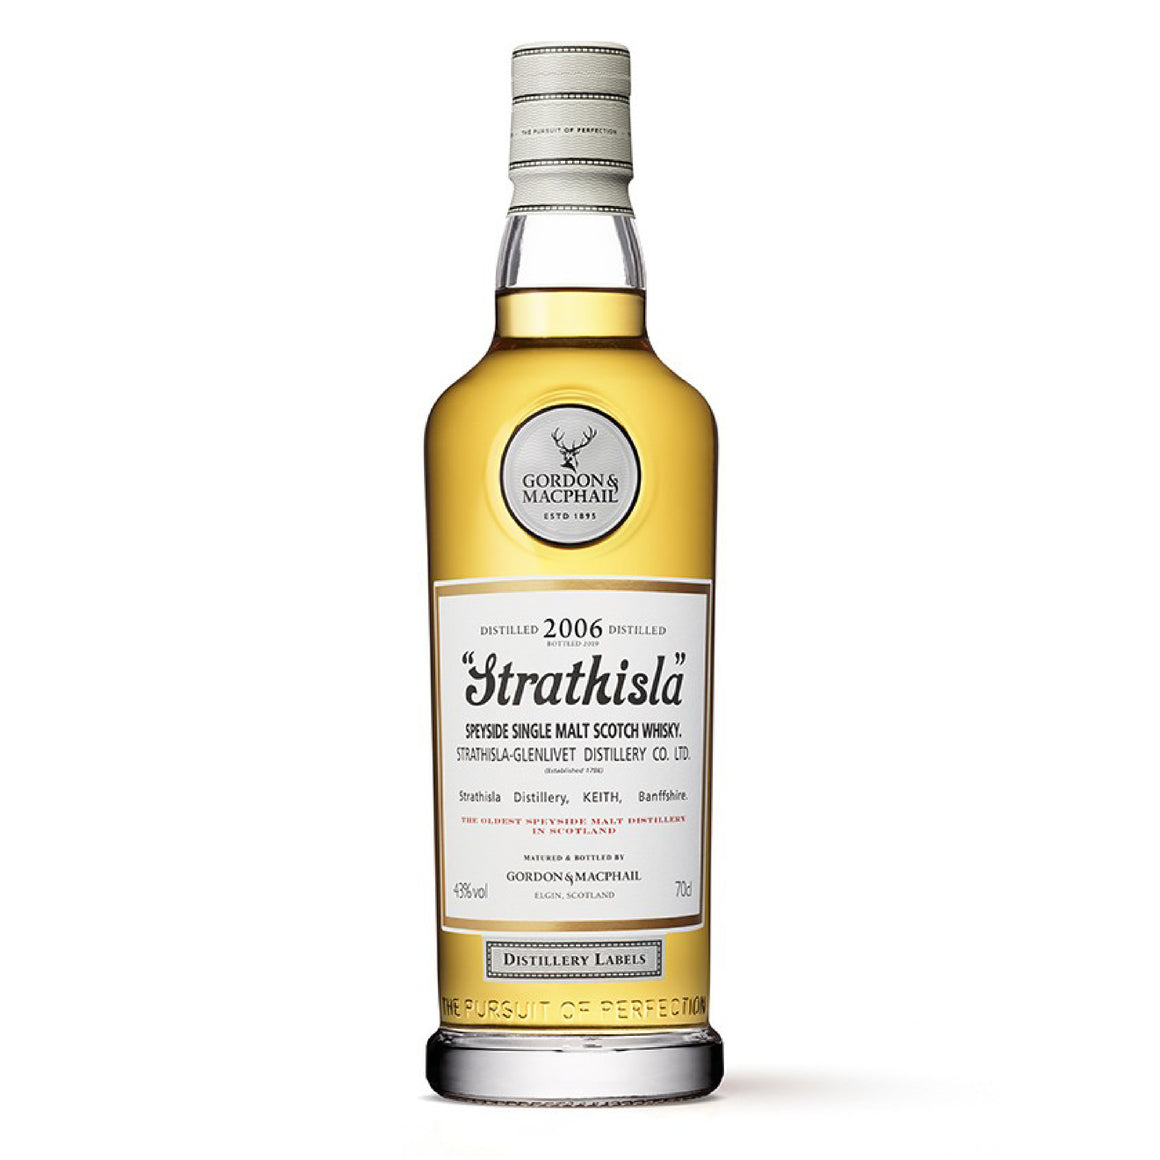 STRATHISLA 2006 SINGLE MALT WHISKY